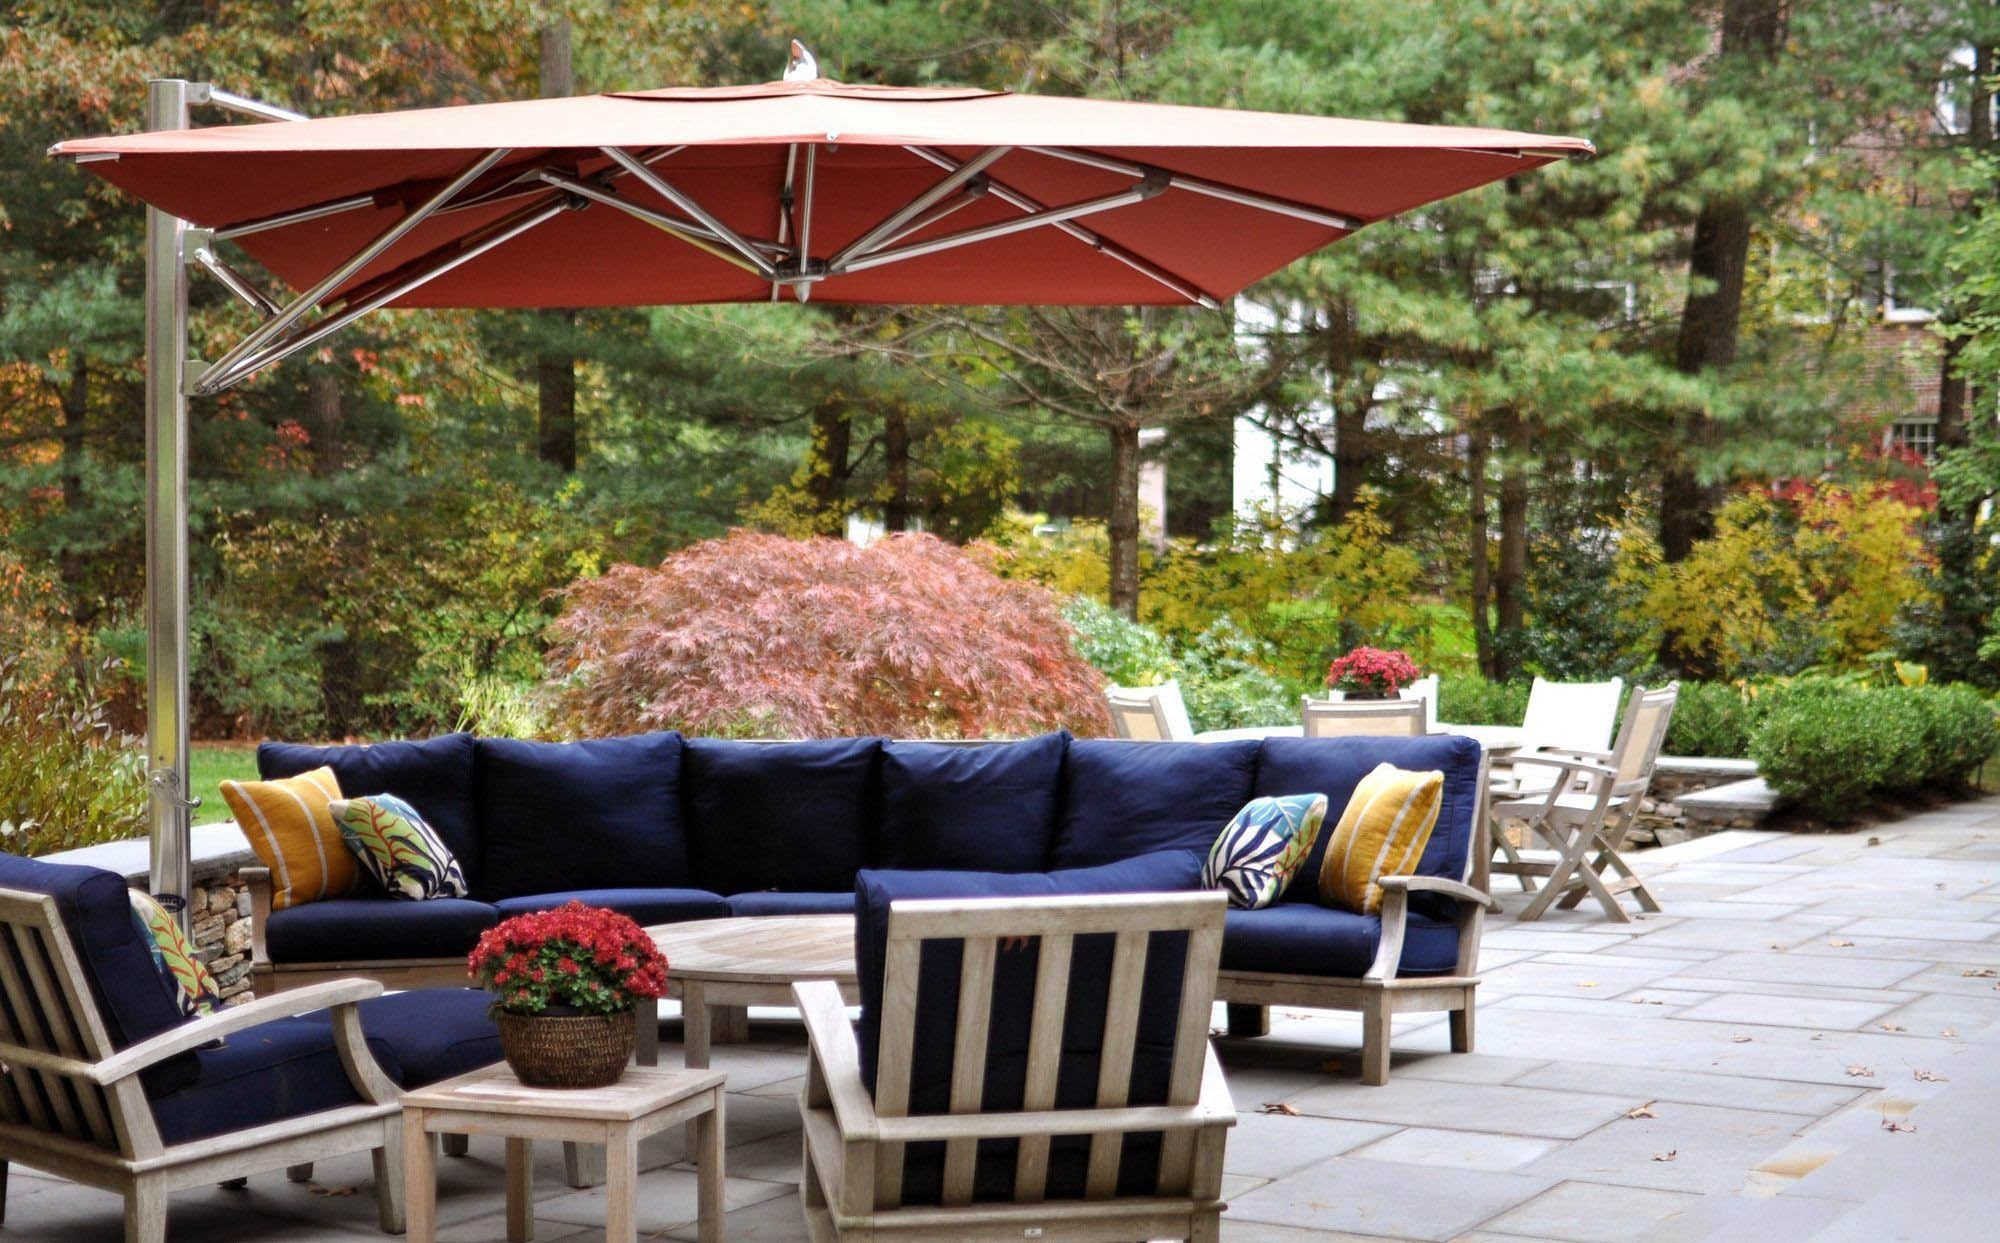 Outdoor patio furniture set with table, chairs, sofa and umbrella. Wood furniture with navy blue cushions. Colorful throw pillows.